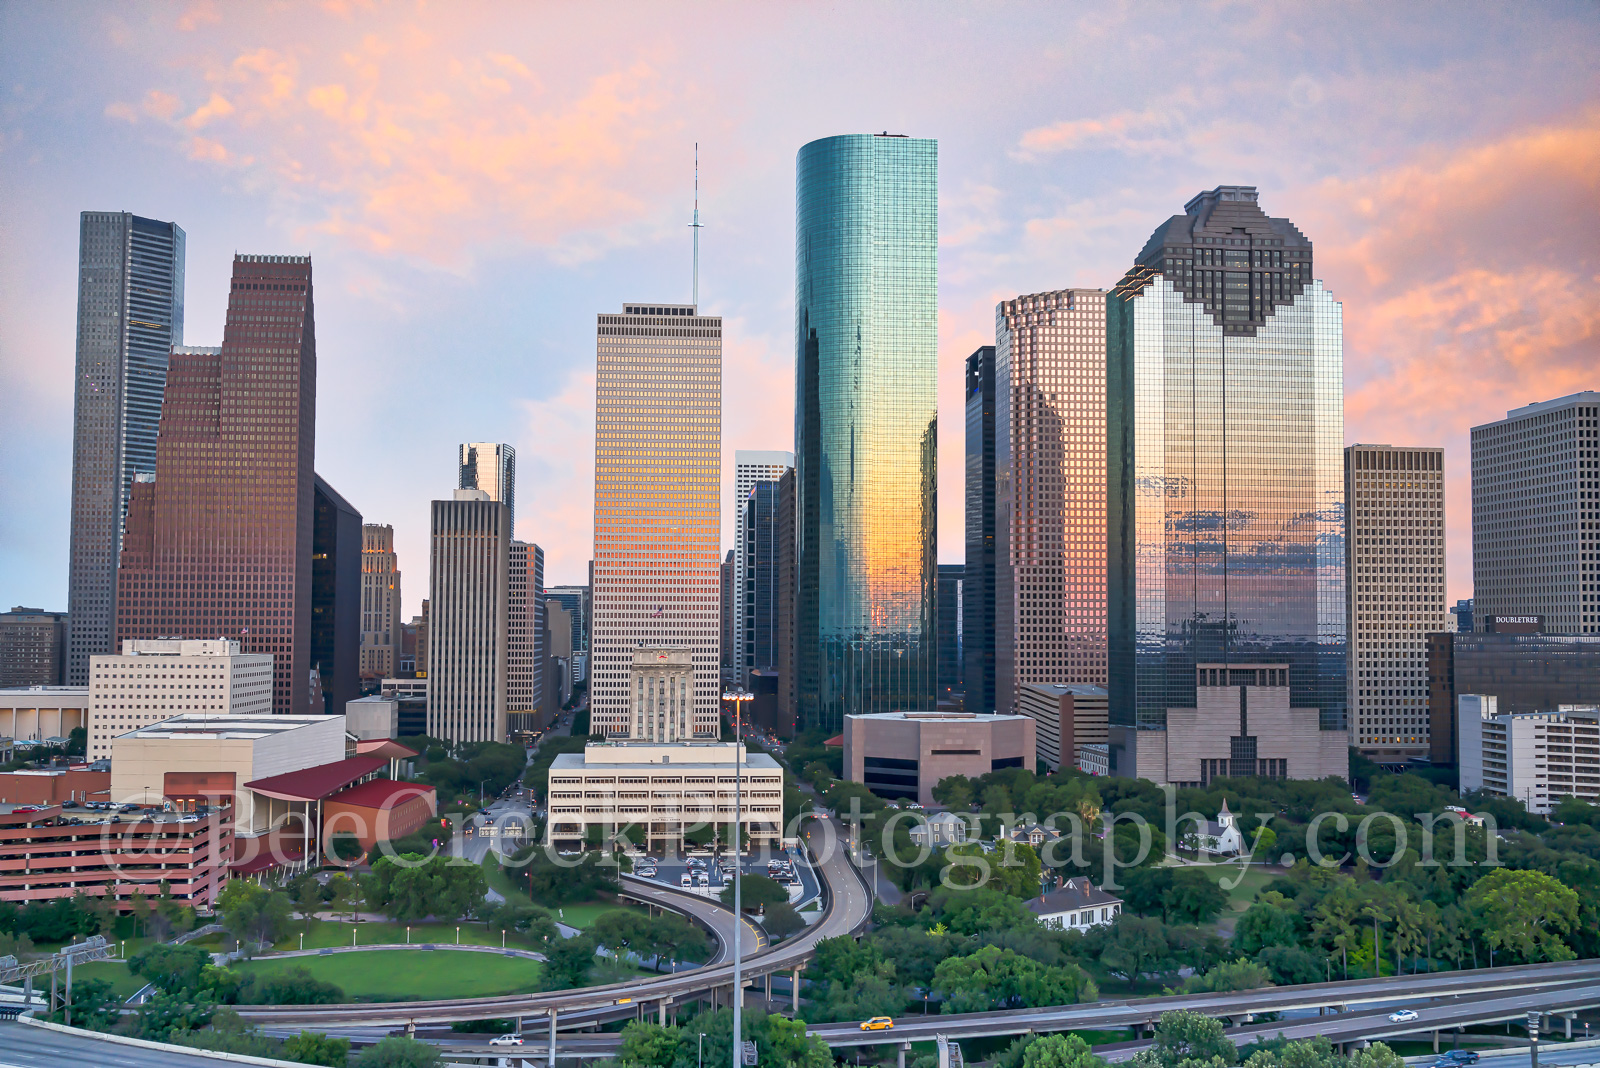 Houston, skyline, sunset, aerial, colors, pink, orange, yellow, cityscape, clouds, back light, low light, city, downtown, skyscrapers, buildings, high rise, IH45, museum district, art, culture, music,, photo